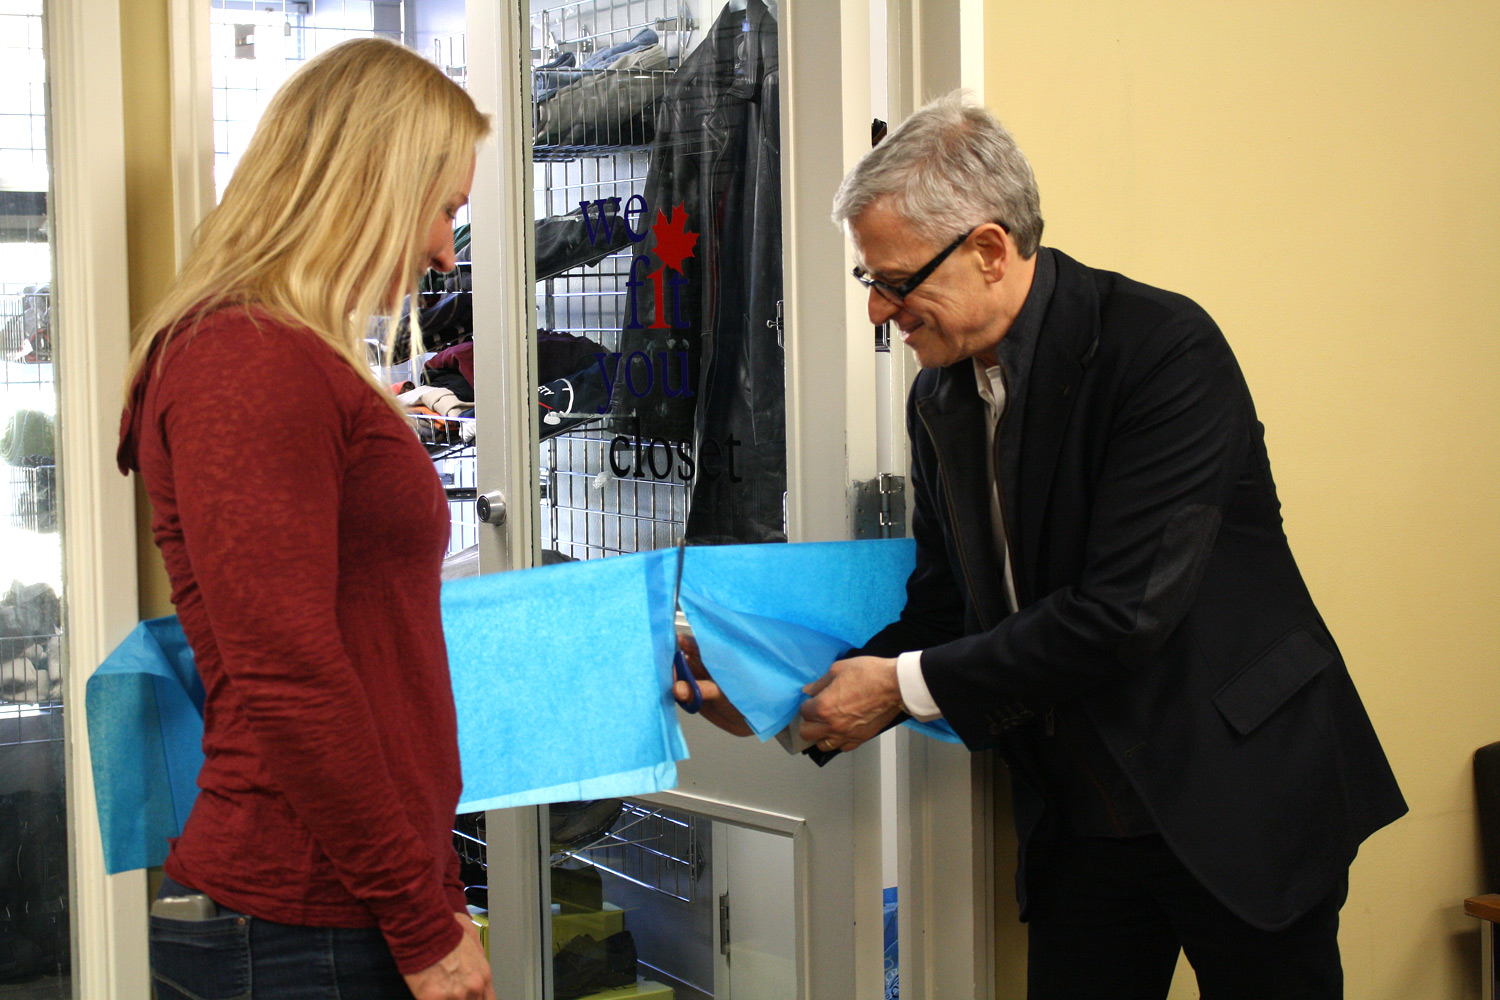 Canadian Footwear co-owner Brian Scharfstein cuts the ribbon on the new We Fit You Closet with help from Tania Weibe, coordinator of reintegration at JHS